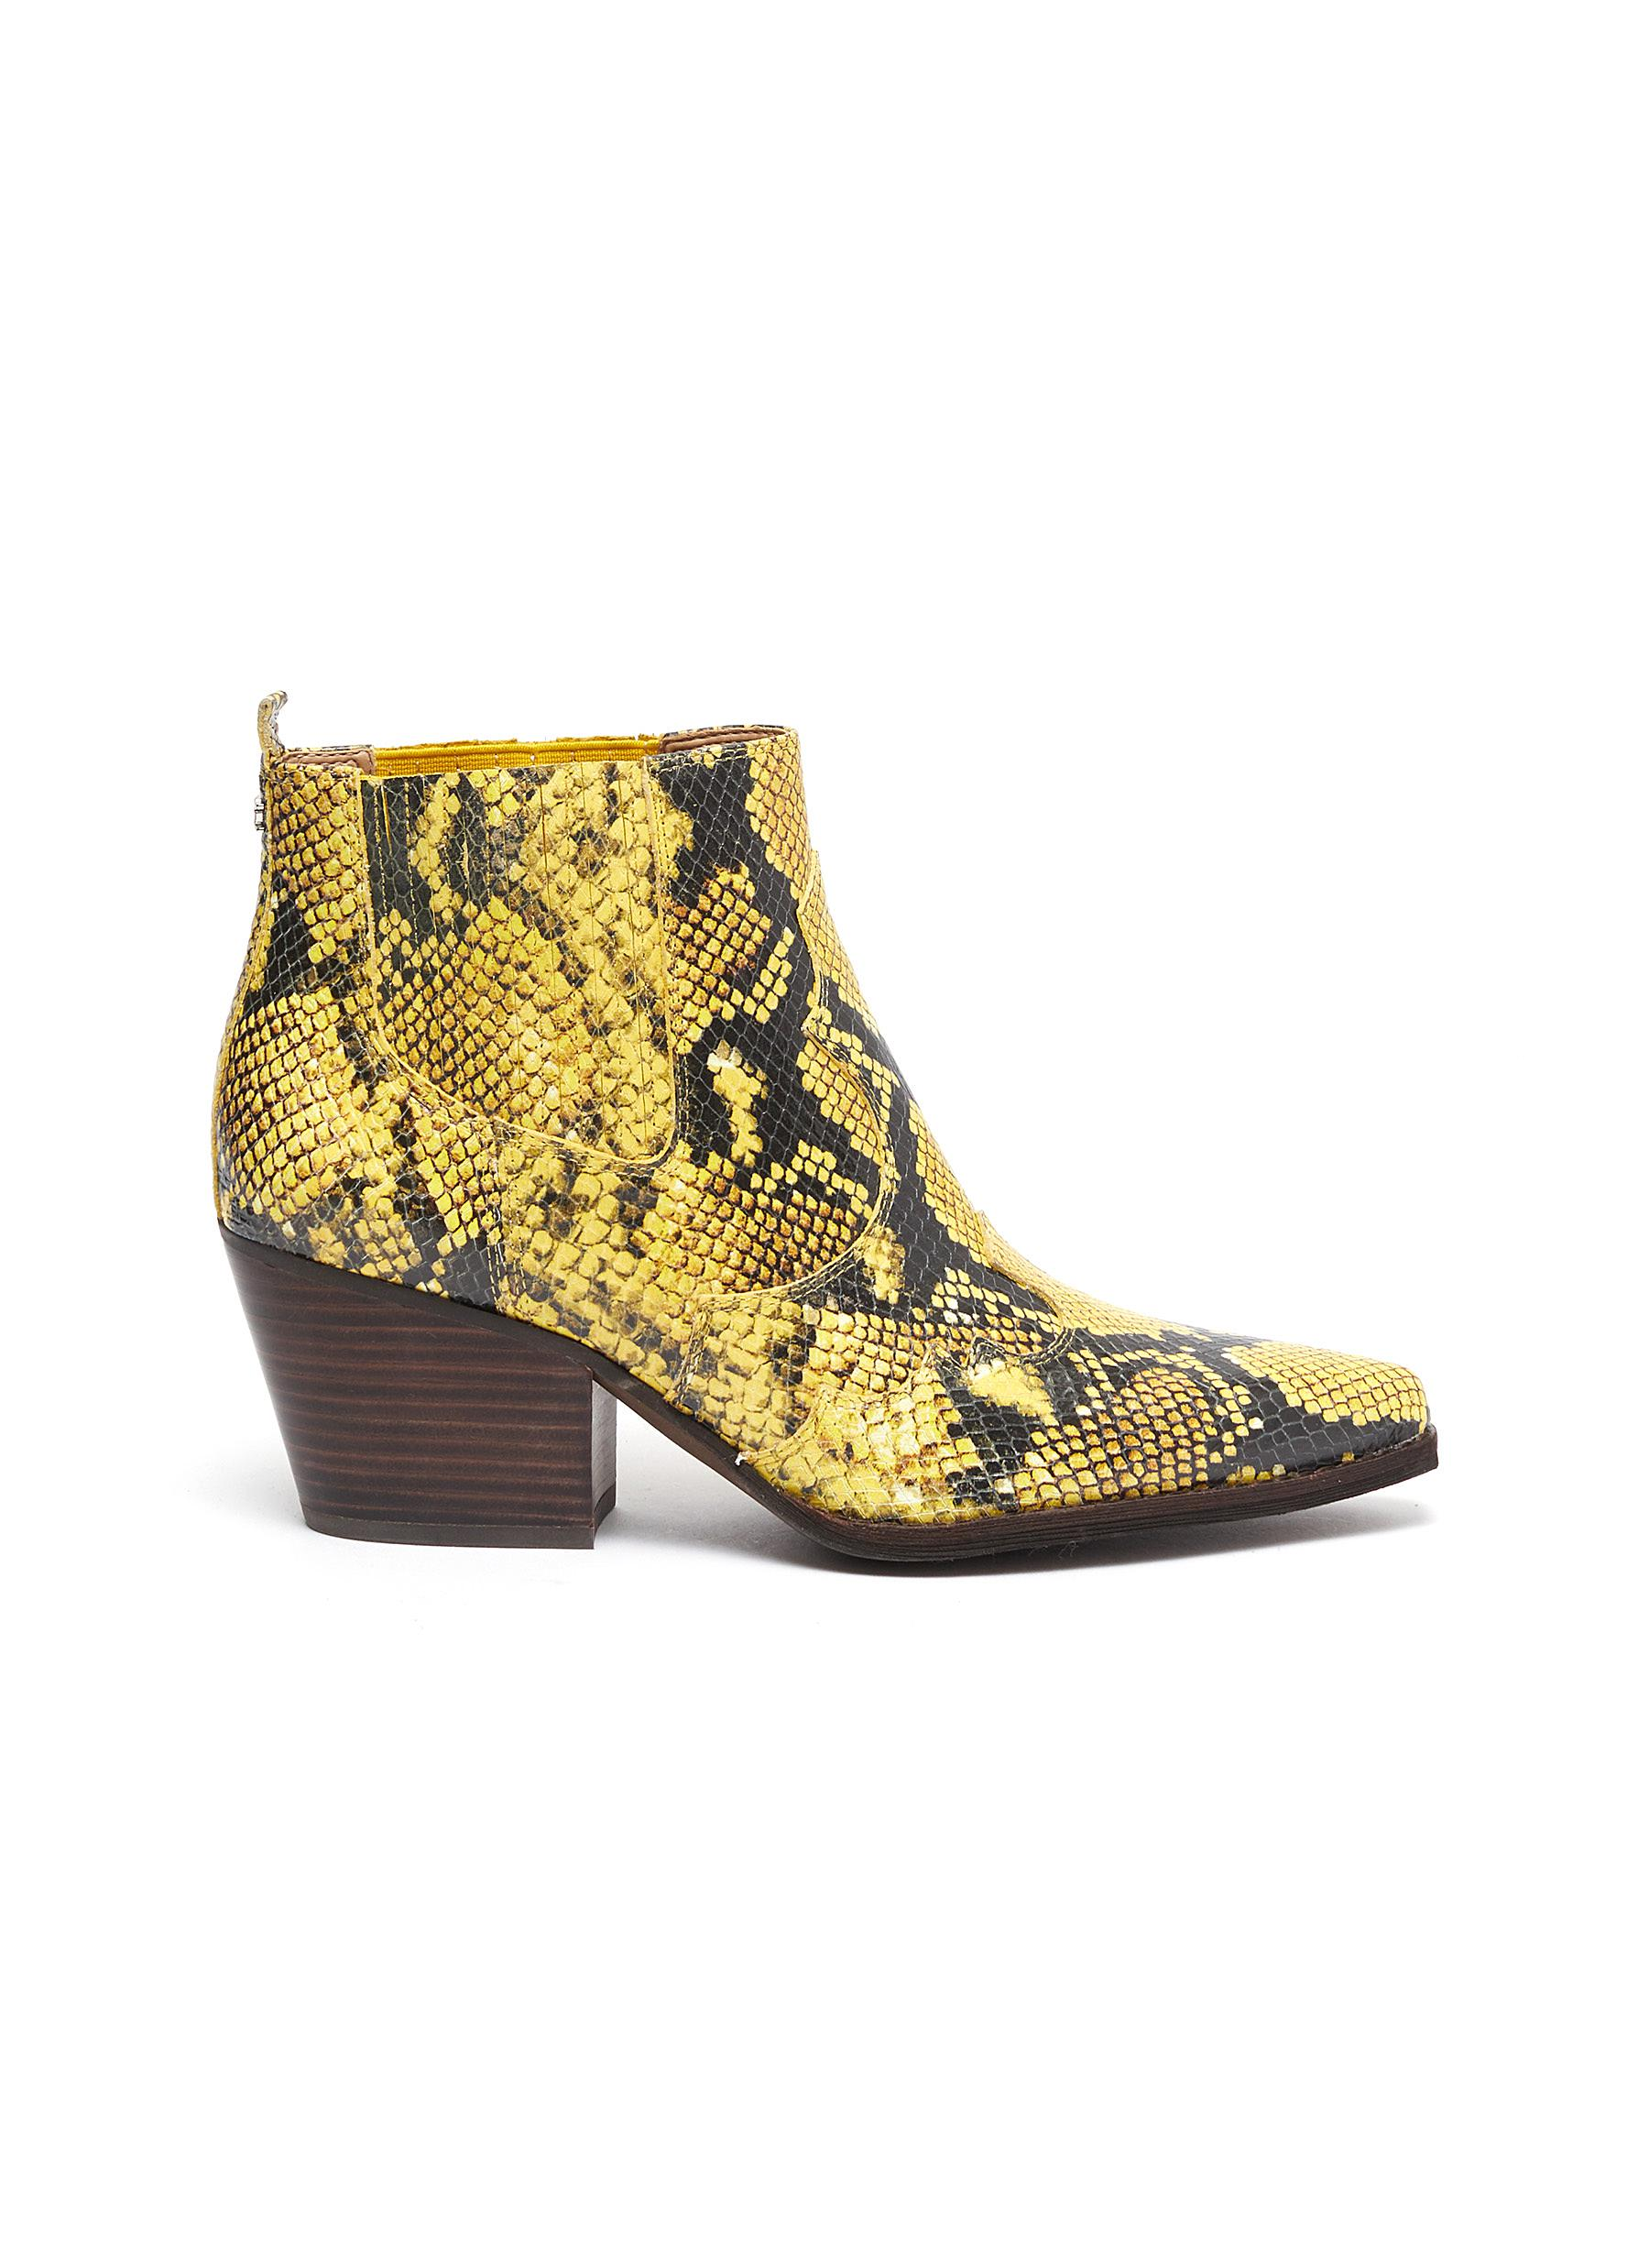 Winona panelled snake embossed leather ankle boots by Sam Edelman